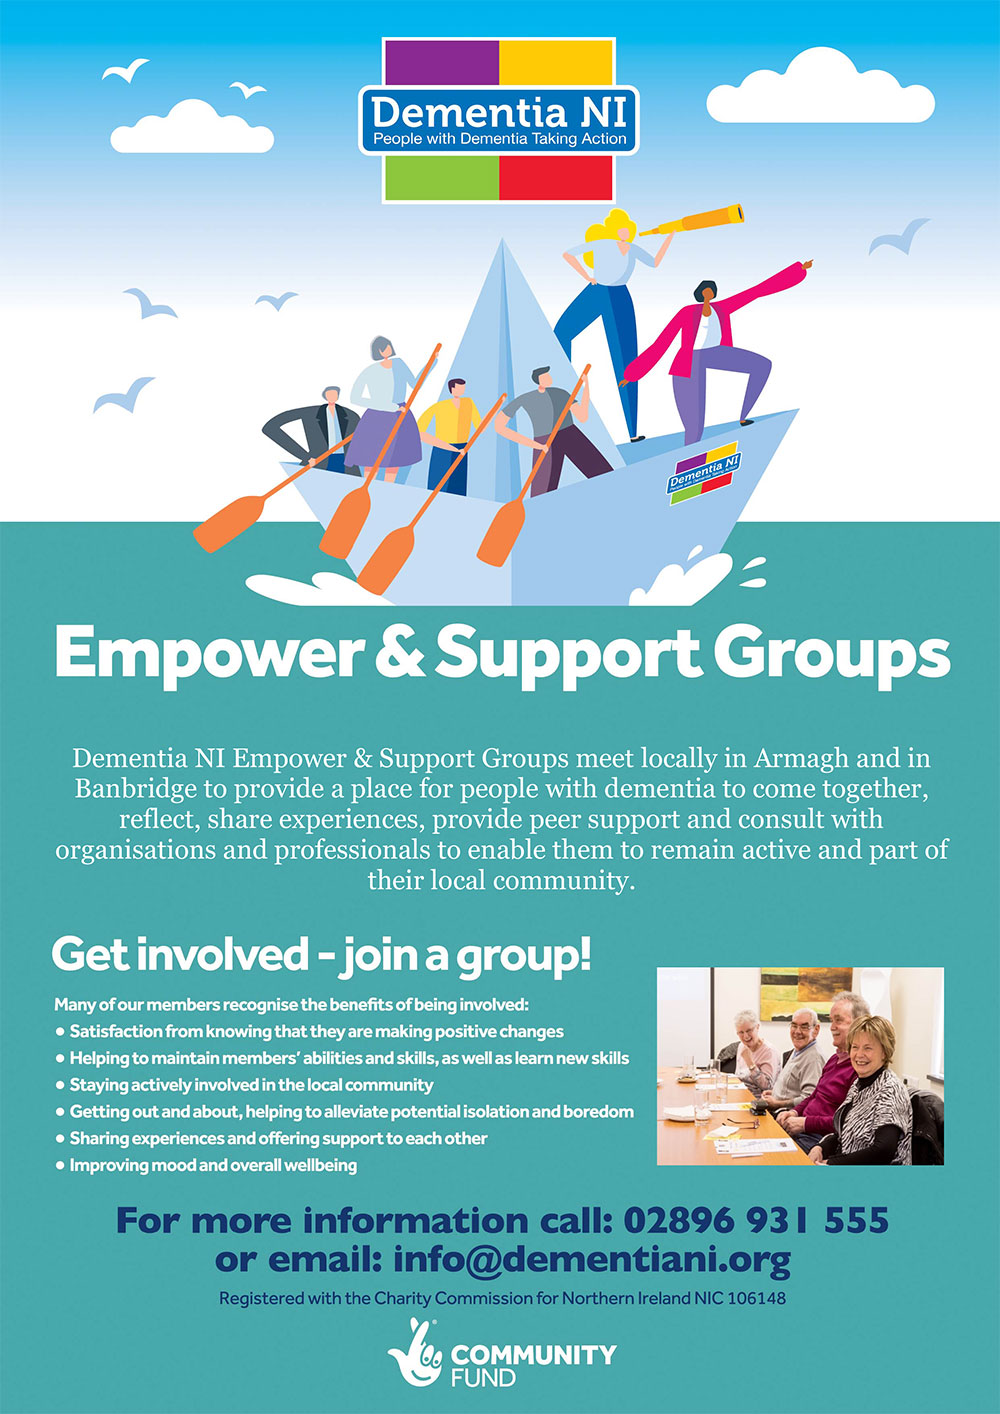 DEMENTIA NI EMPOWER GROUP